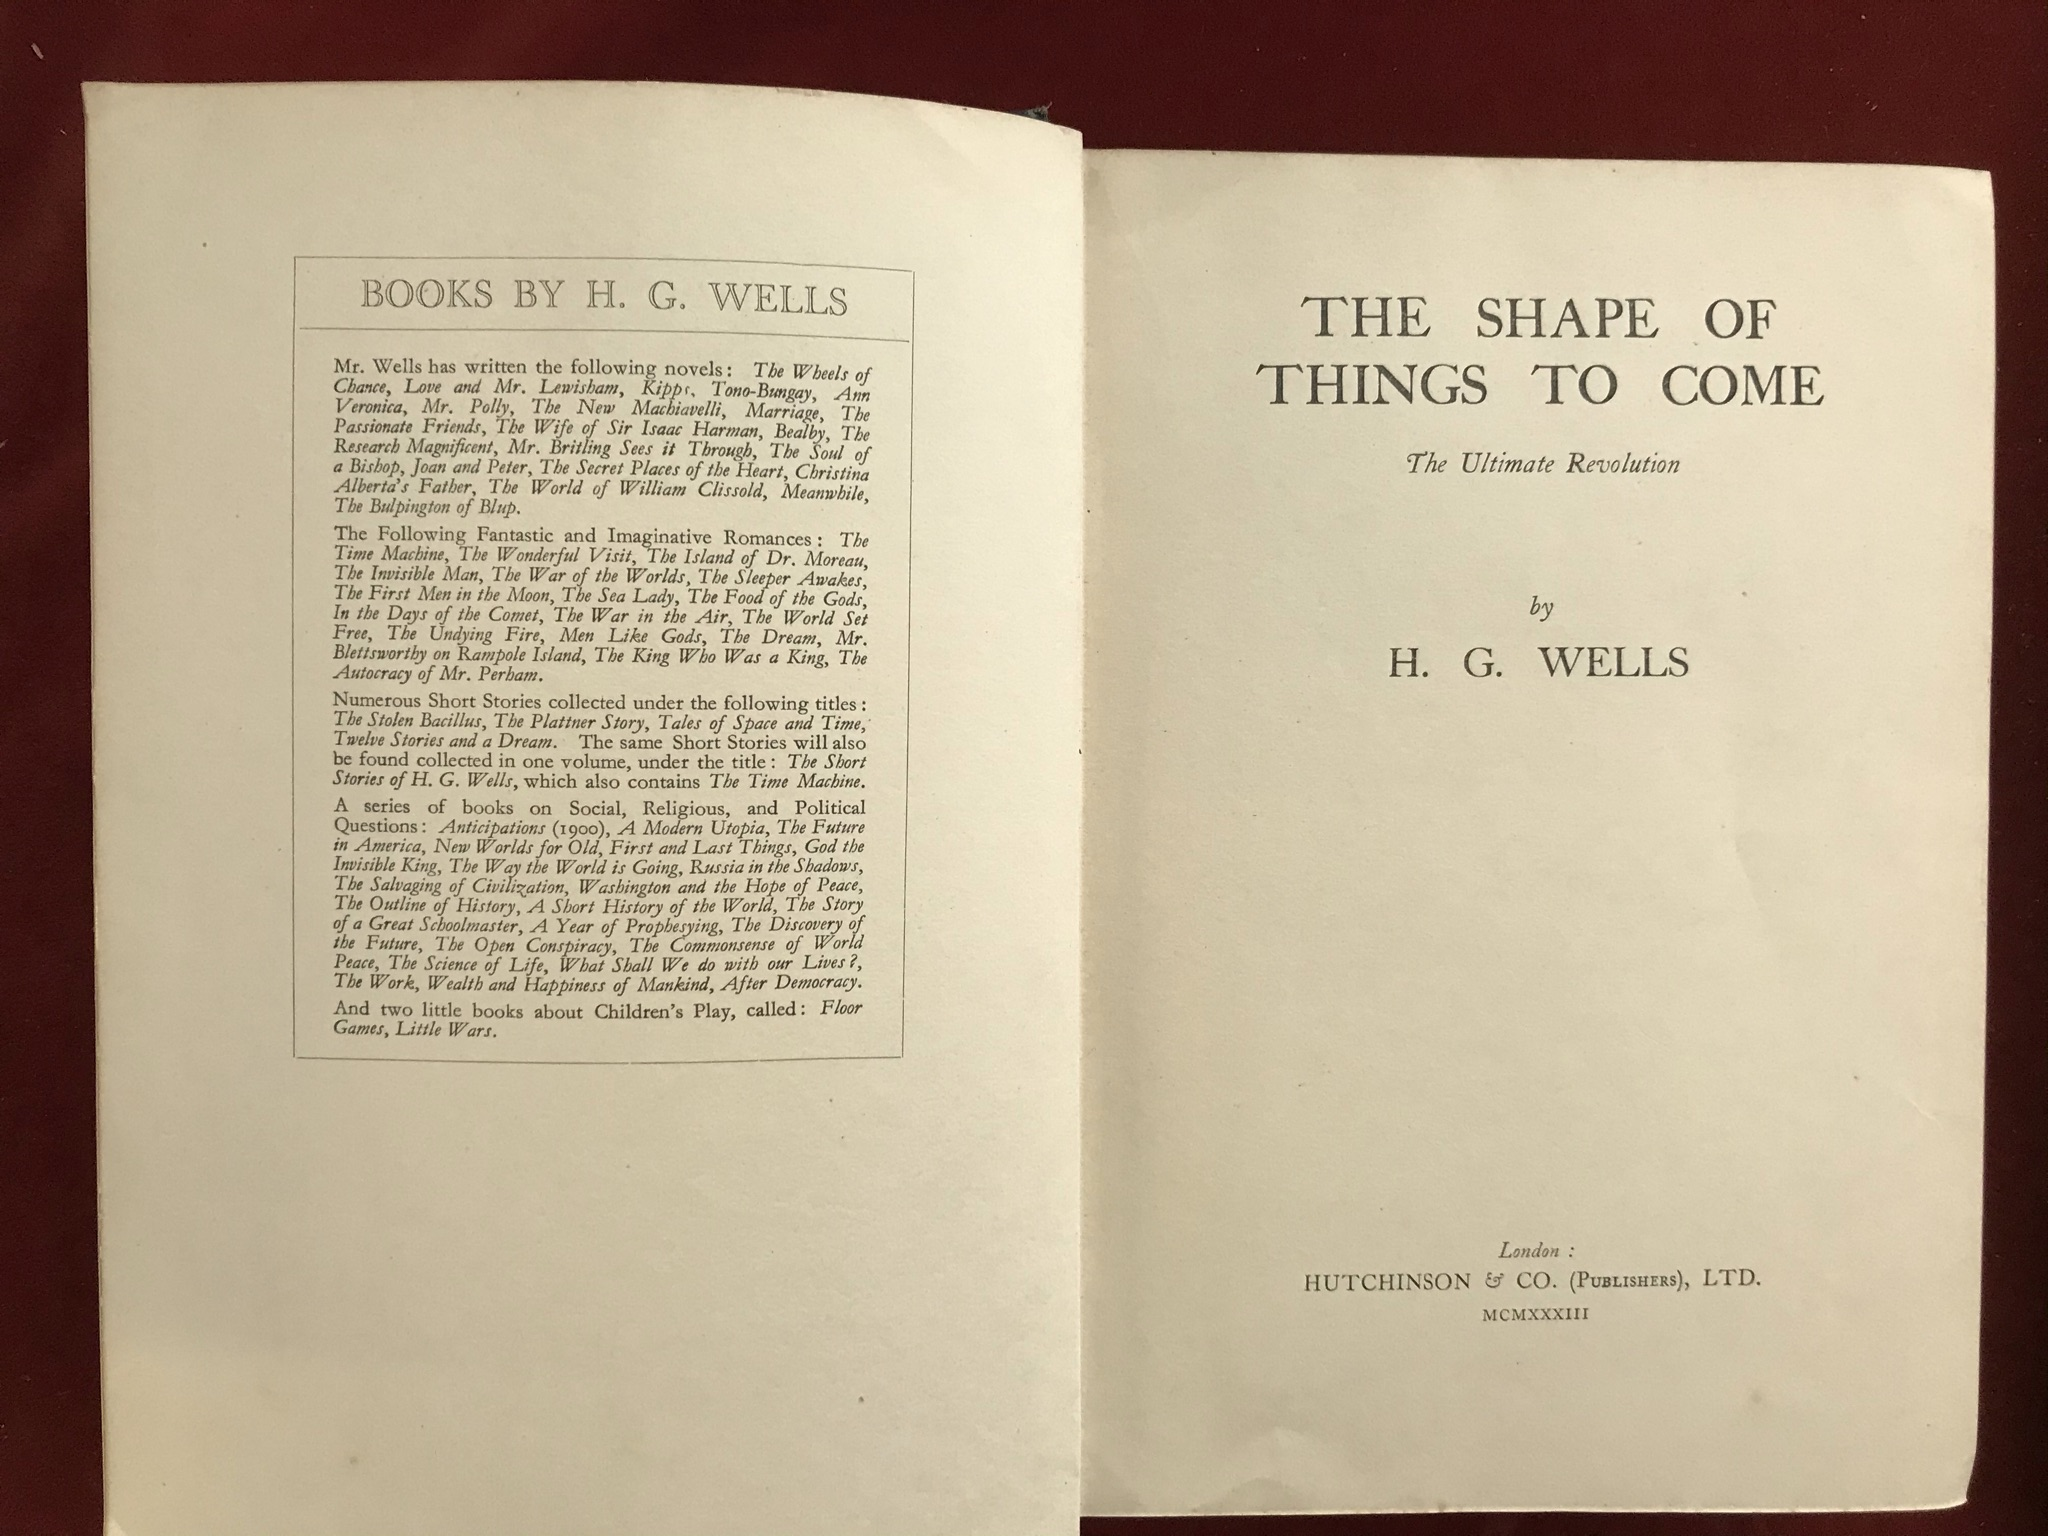 The Shape of Things to Come First edition no D/W, 1933 - Image 3 of 3